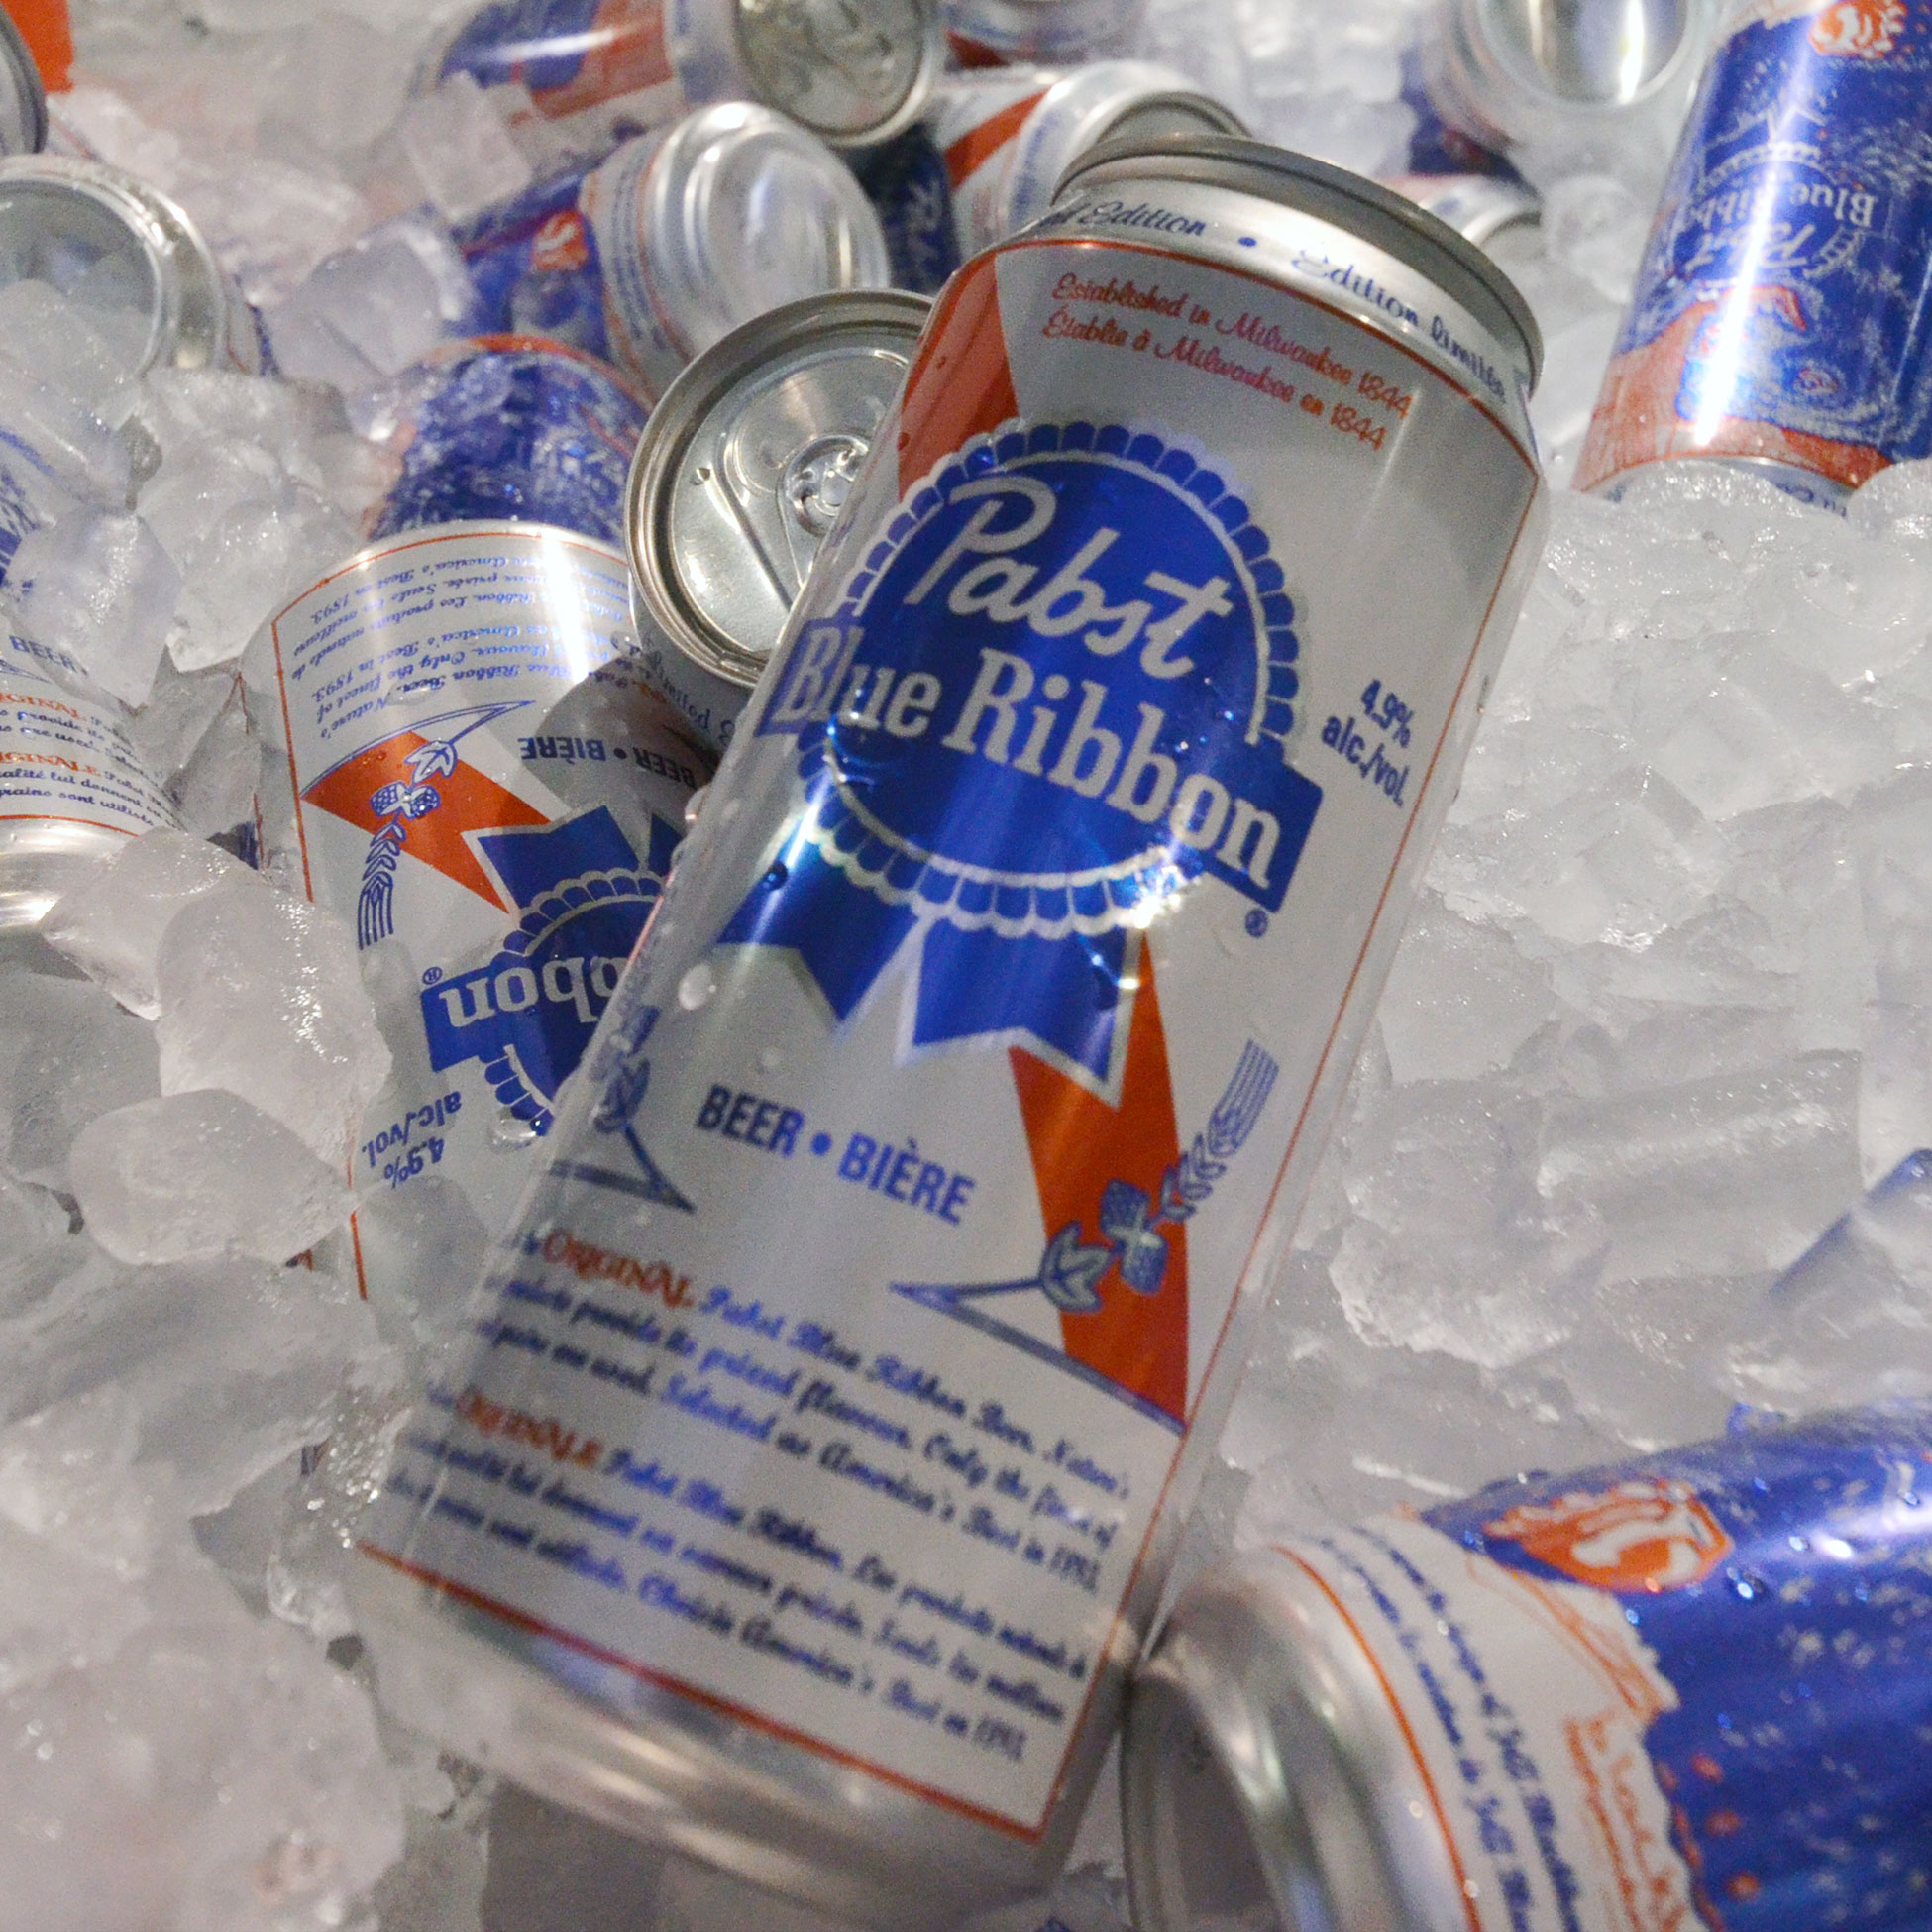 free-images-beer-on-ice-pabst-blue-ribbon-creative-commons-cc-commercial-use-can